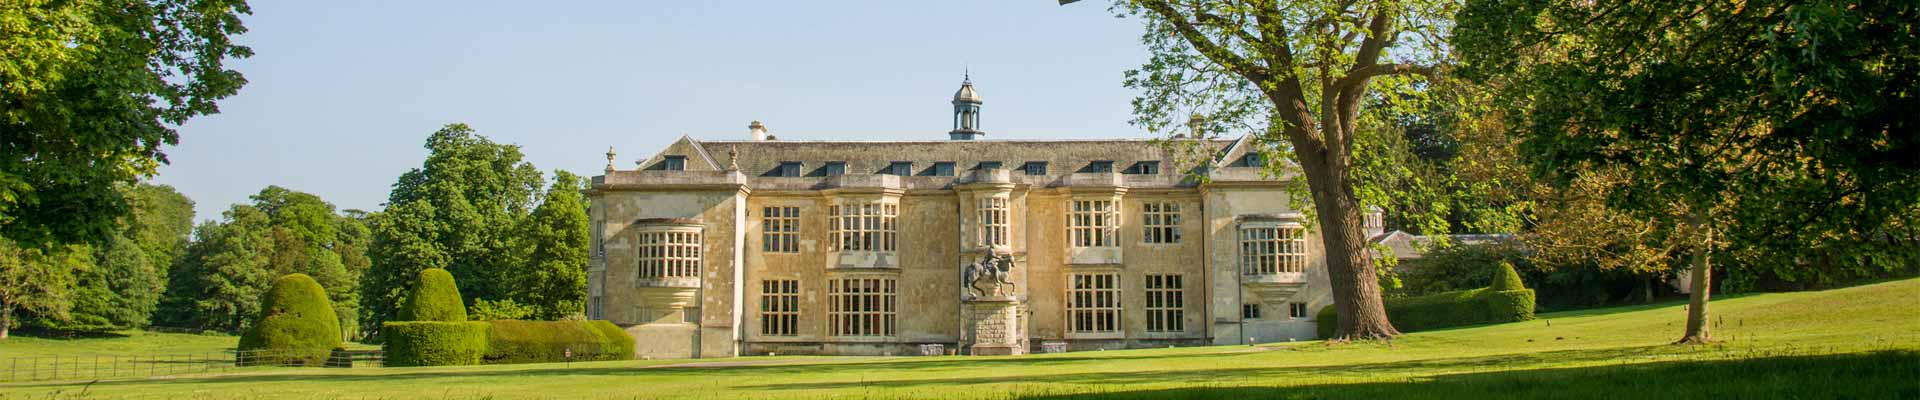 Image of Hartwell House in its grounds